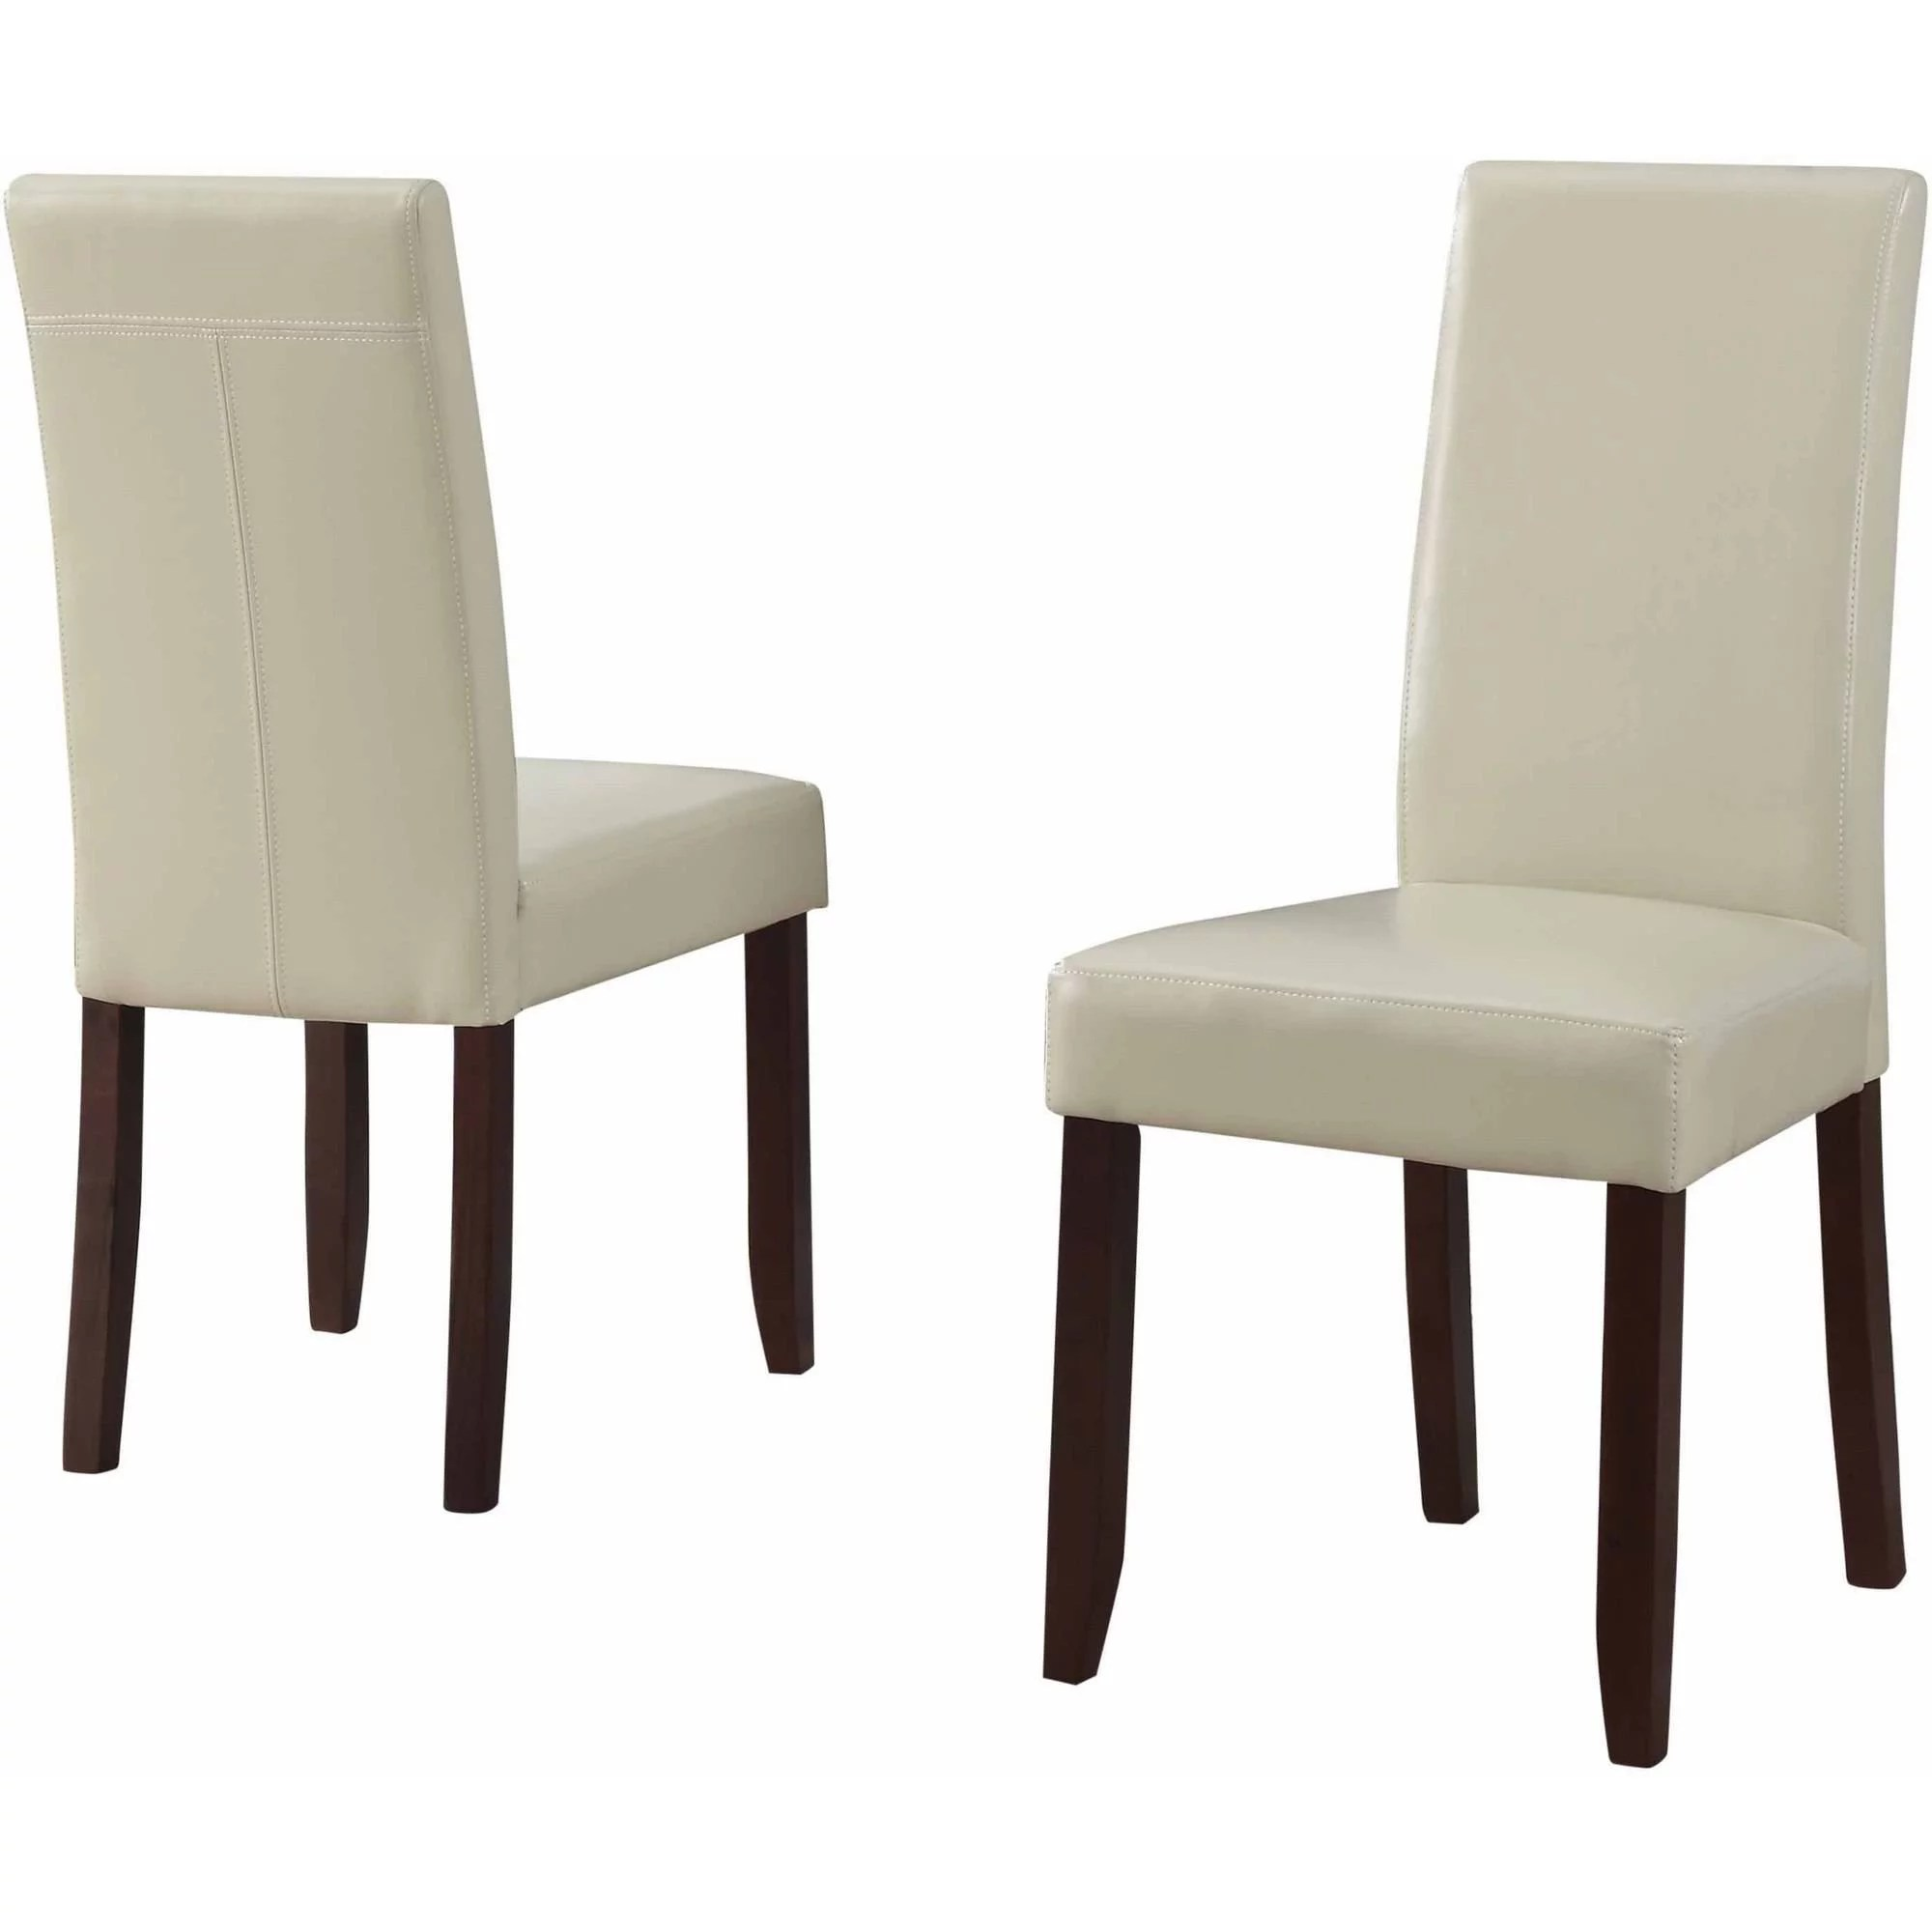 Chairs Dining Dining Chairs Walmart